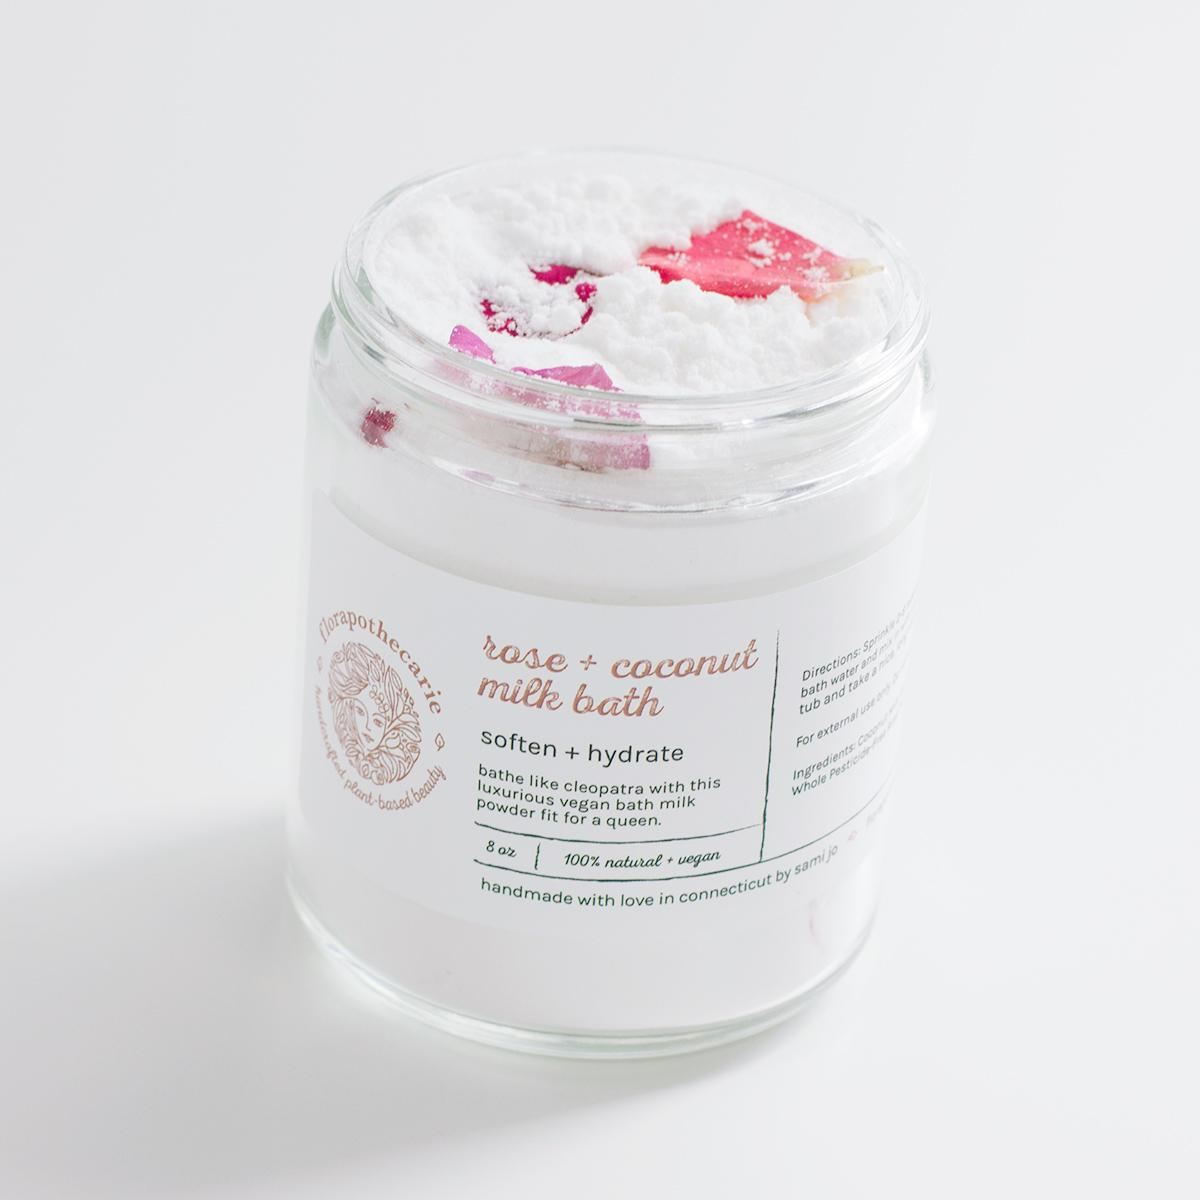 Rose + Coconut Milk Bath